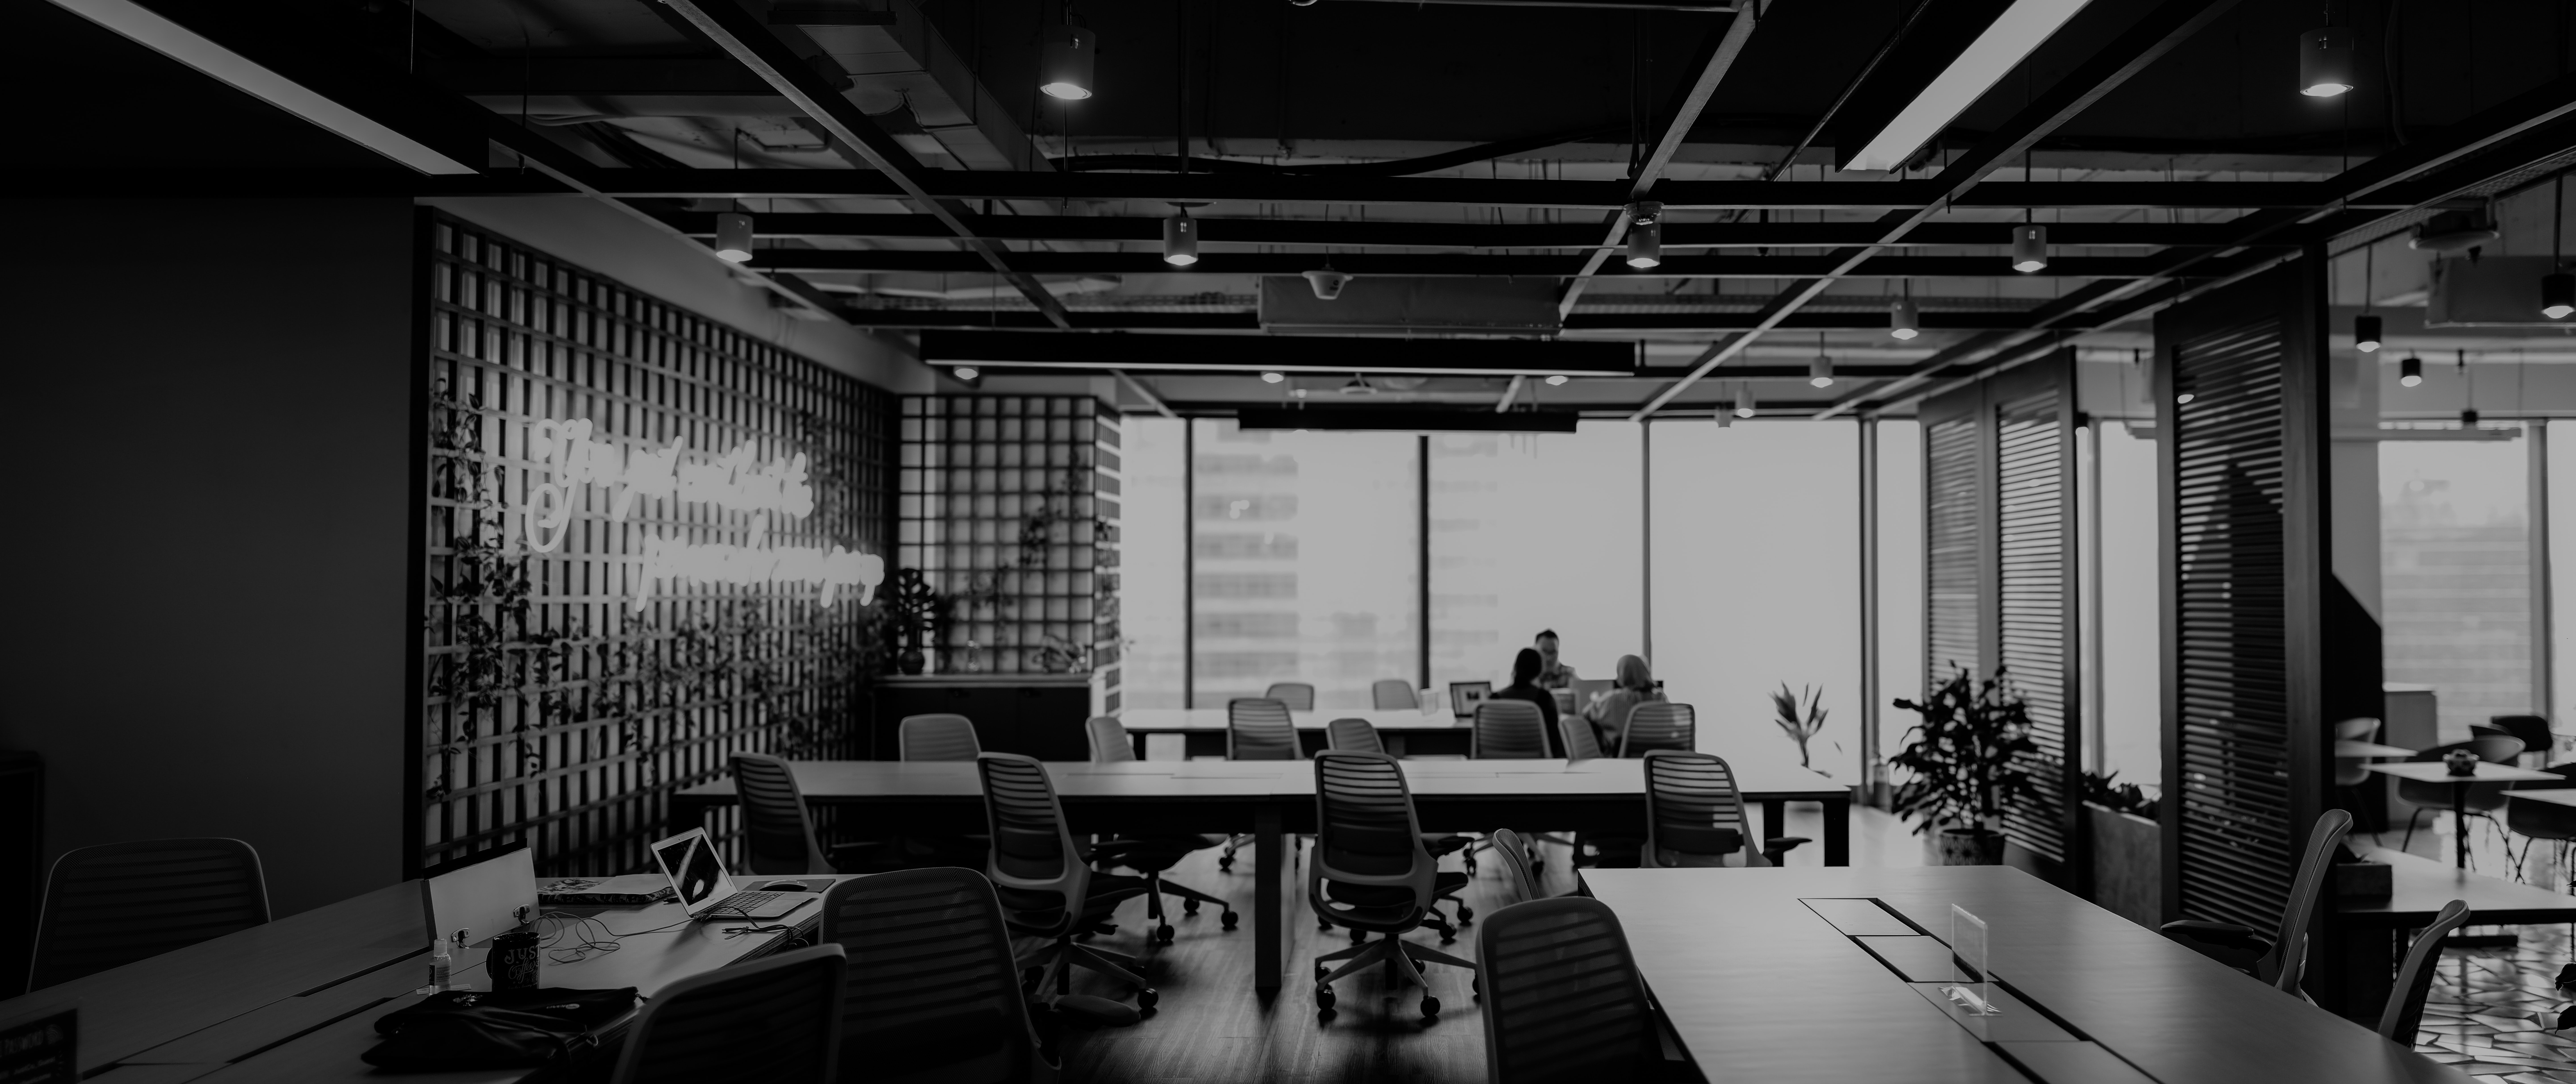 black and white photo of an office